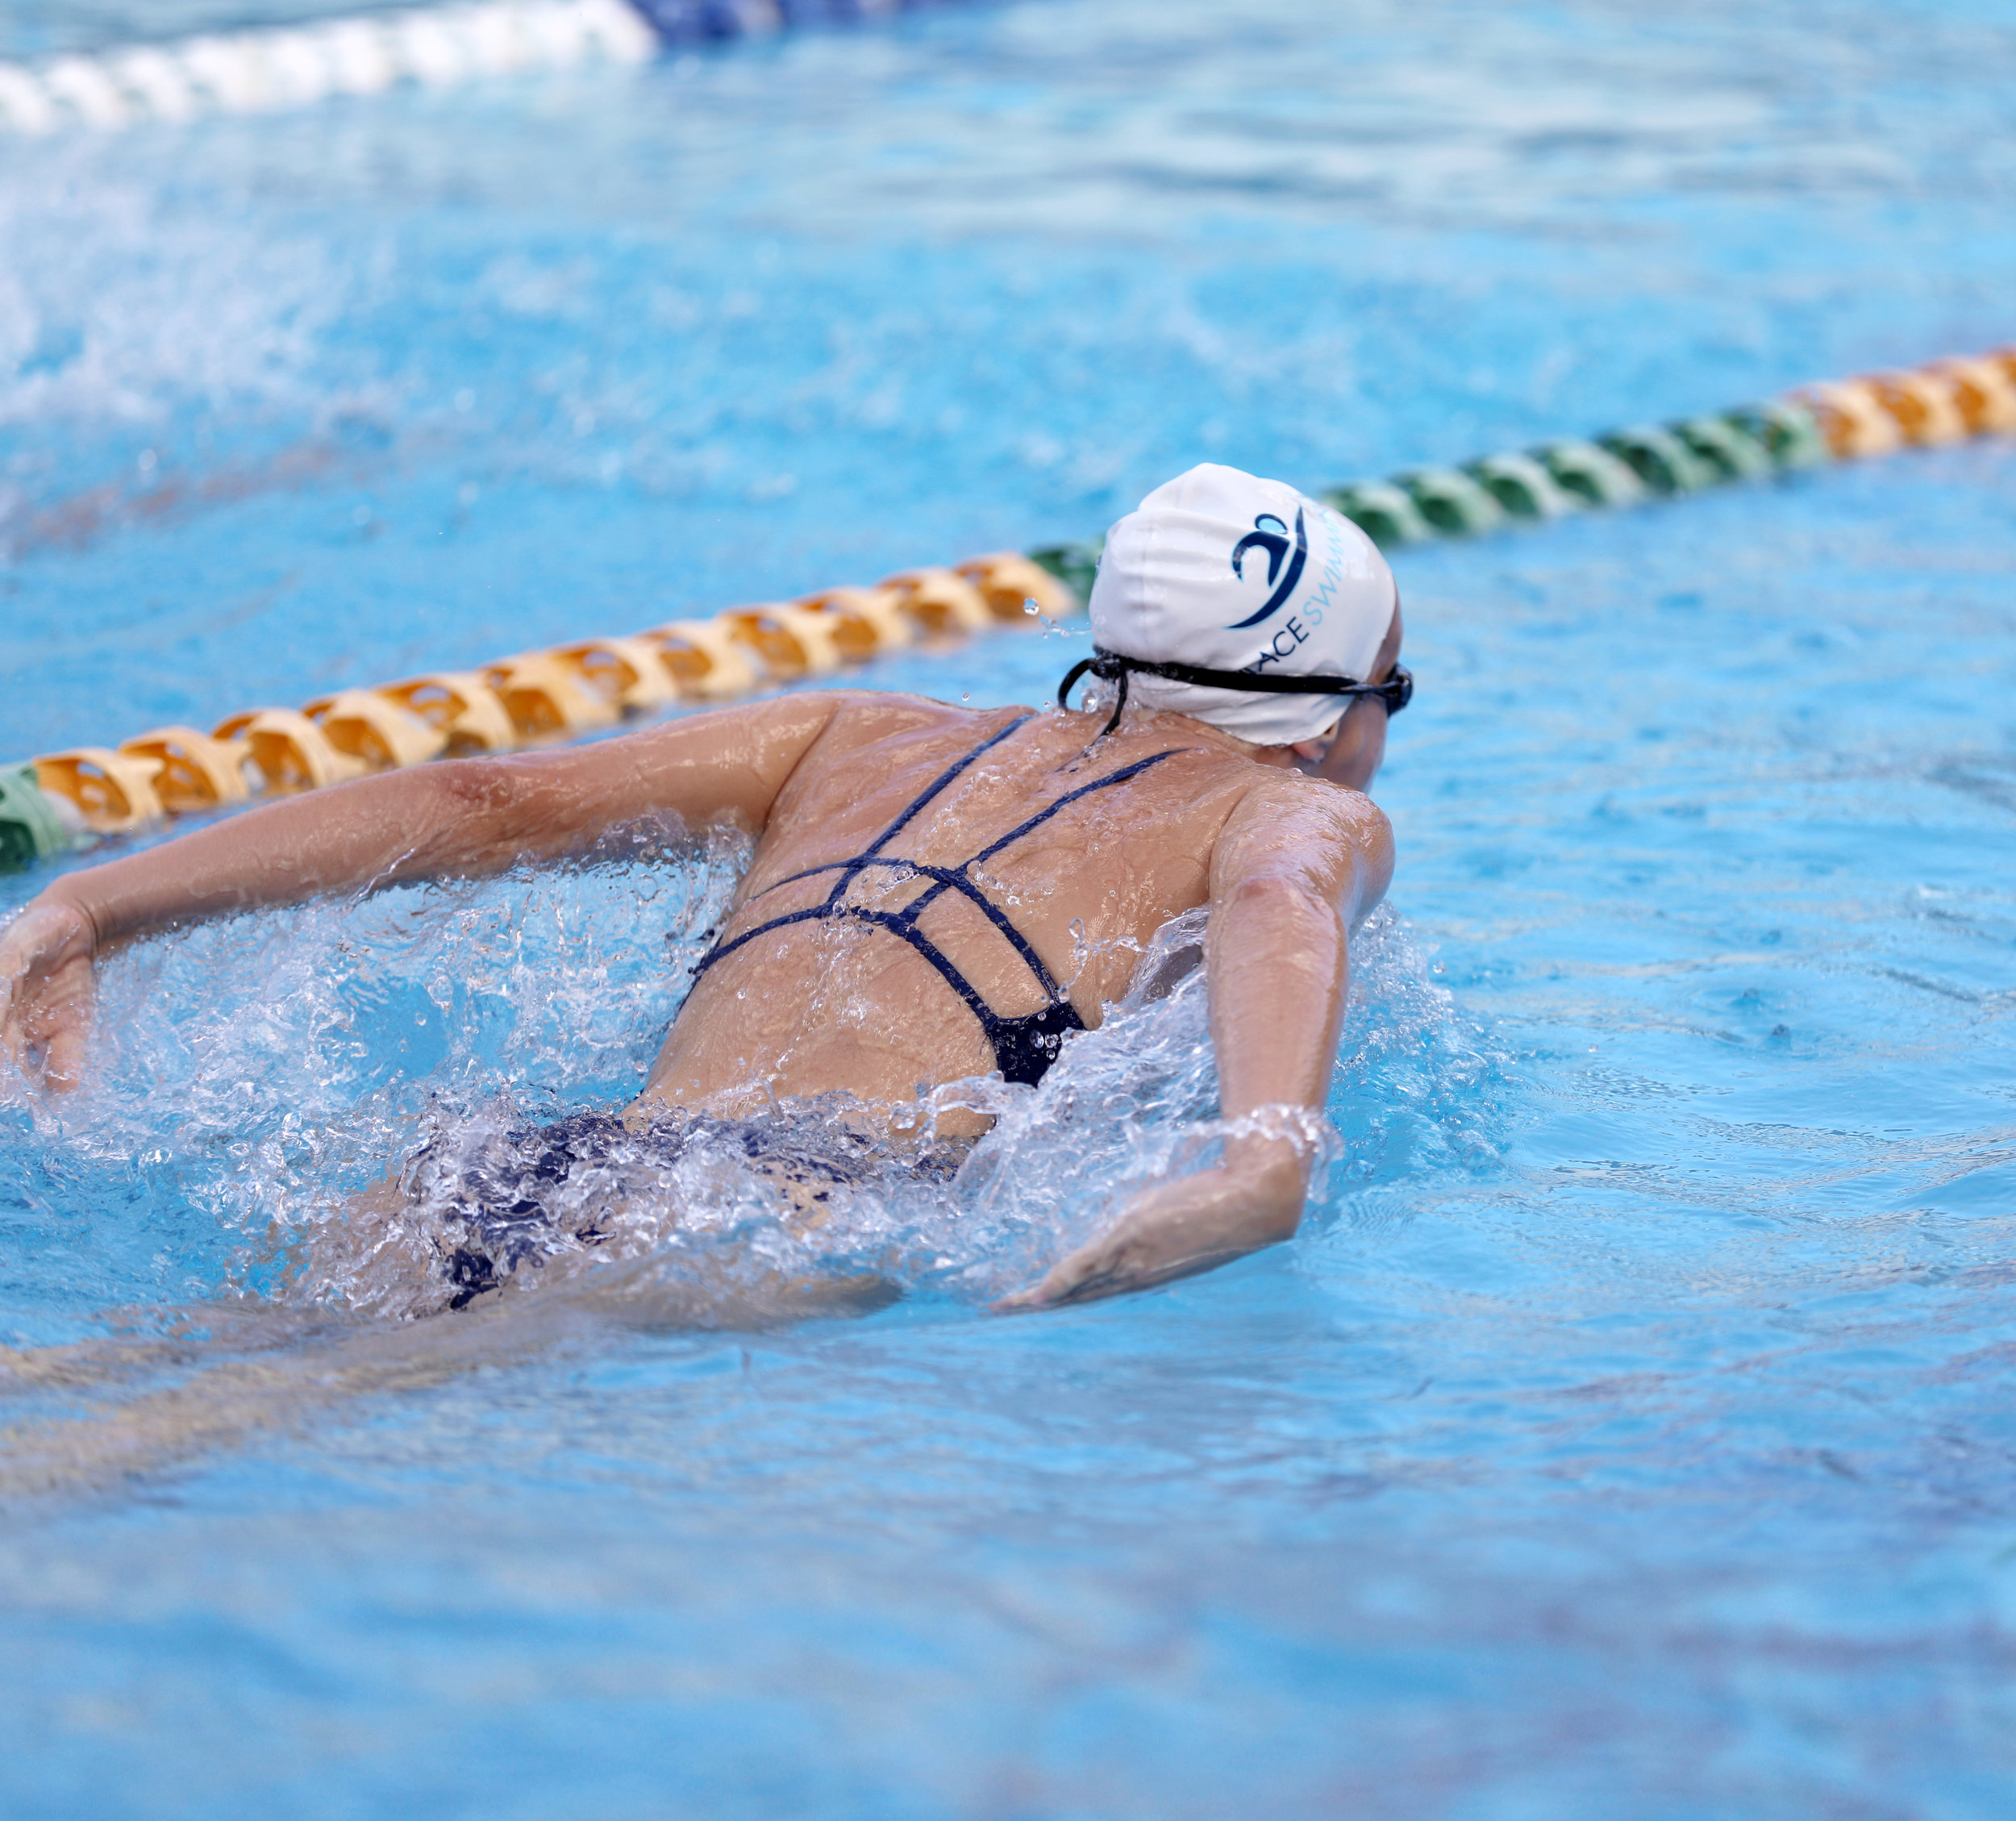 Squads - We have Squads available for swimmers of all abilities from recreational Squad Swimmers through to National level competitors.